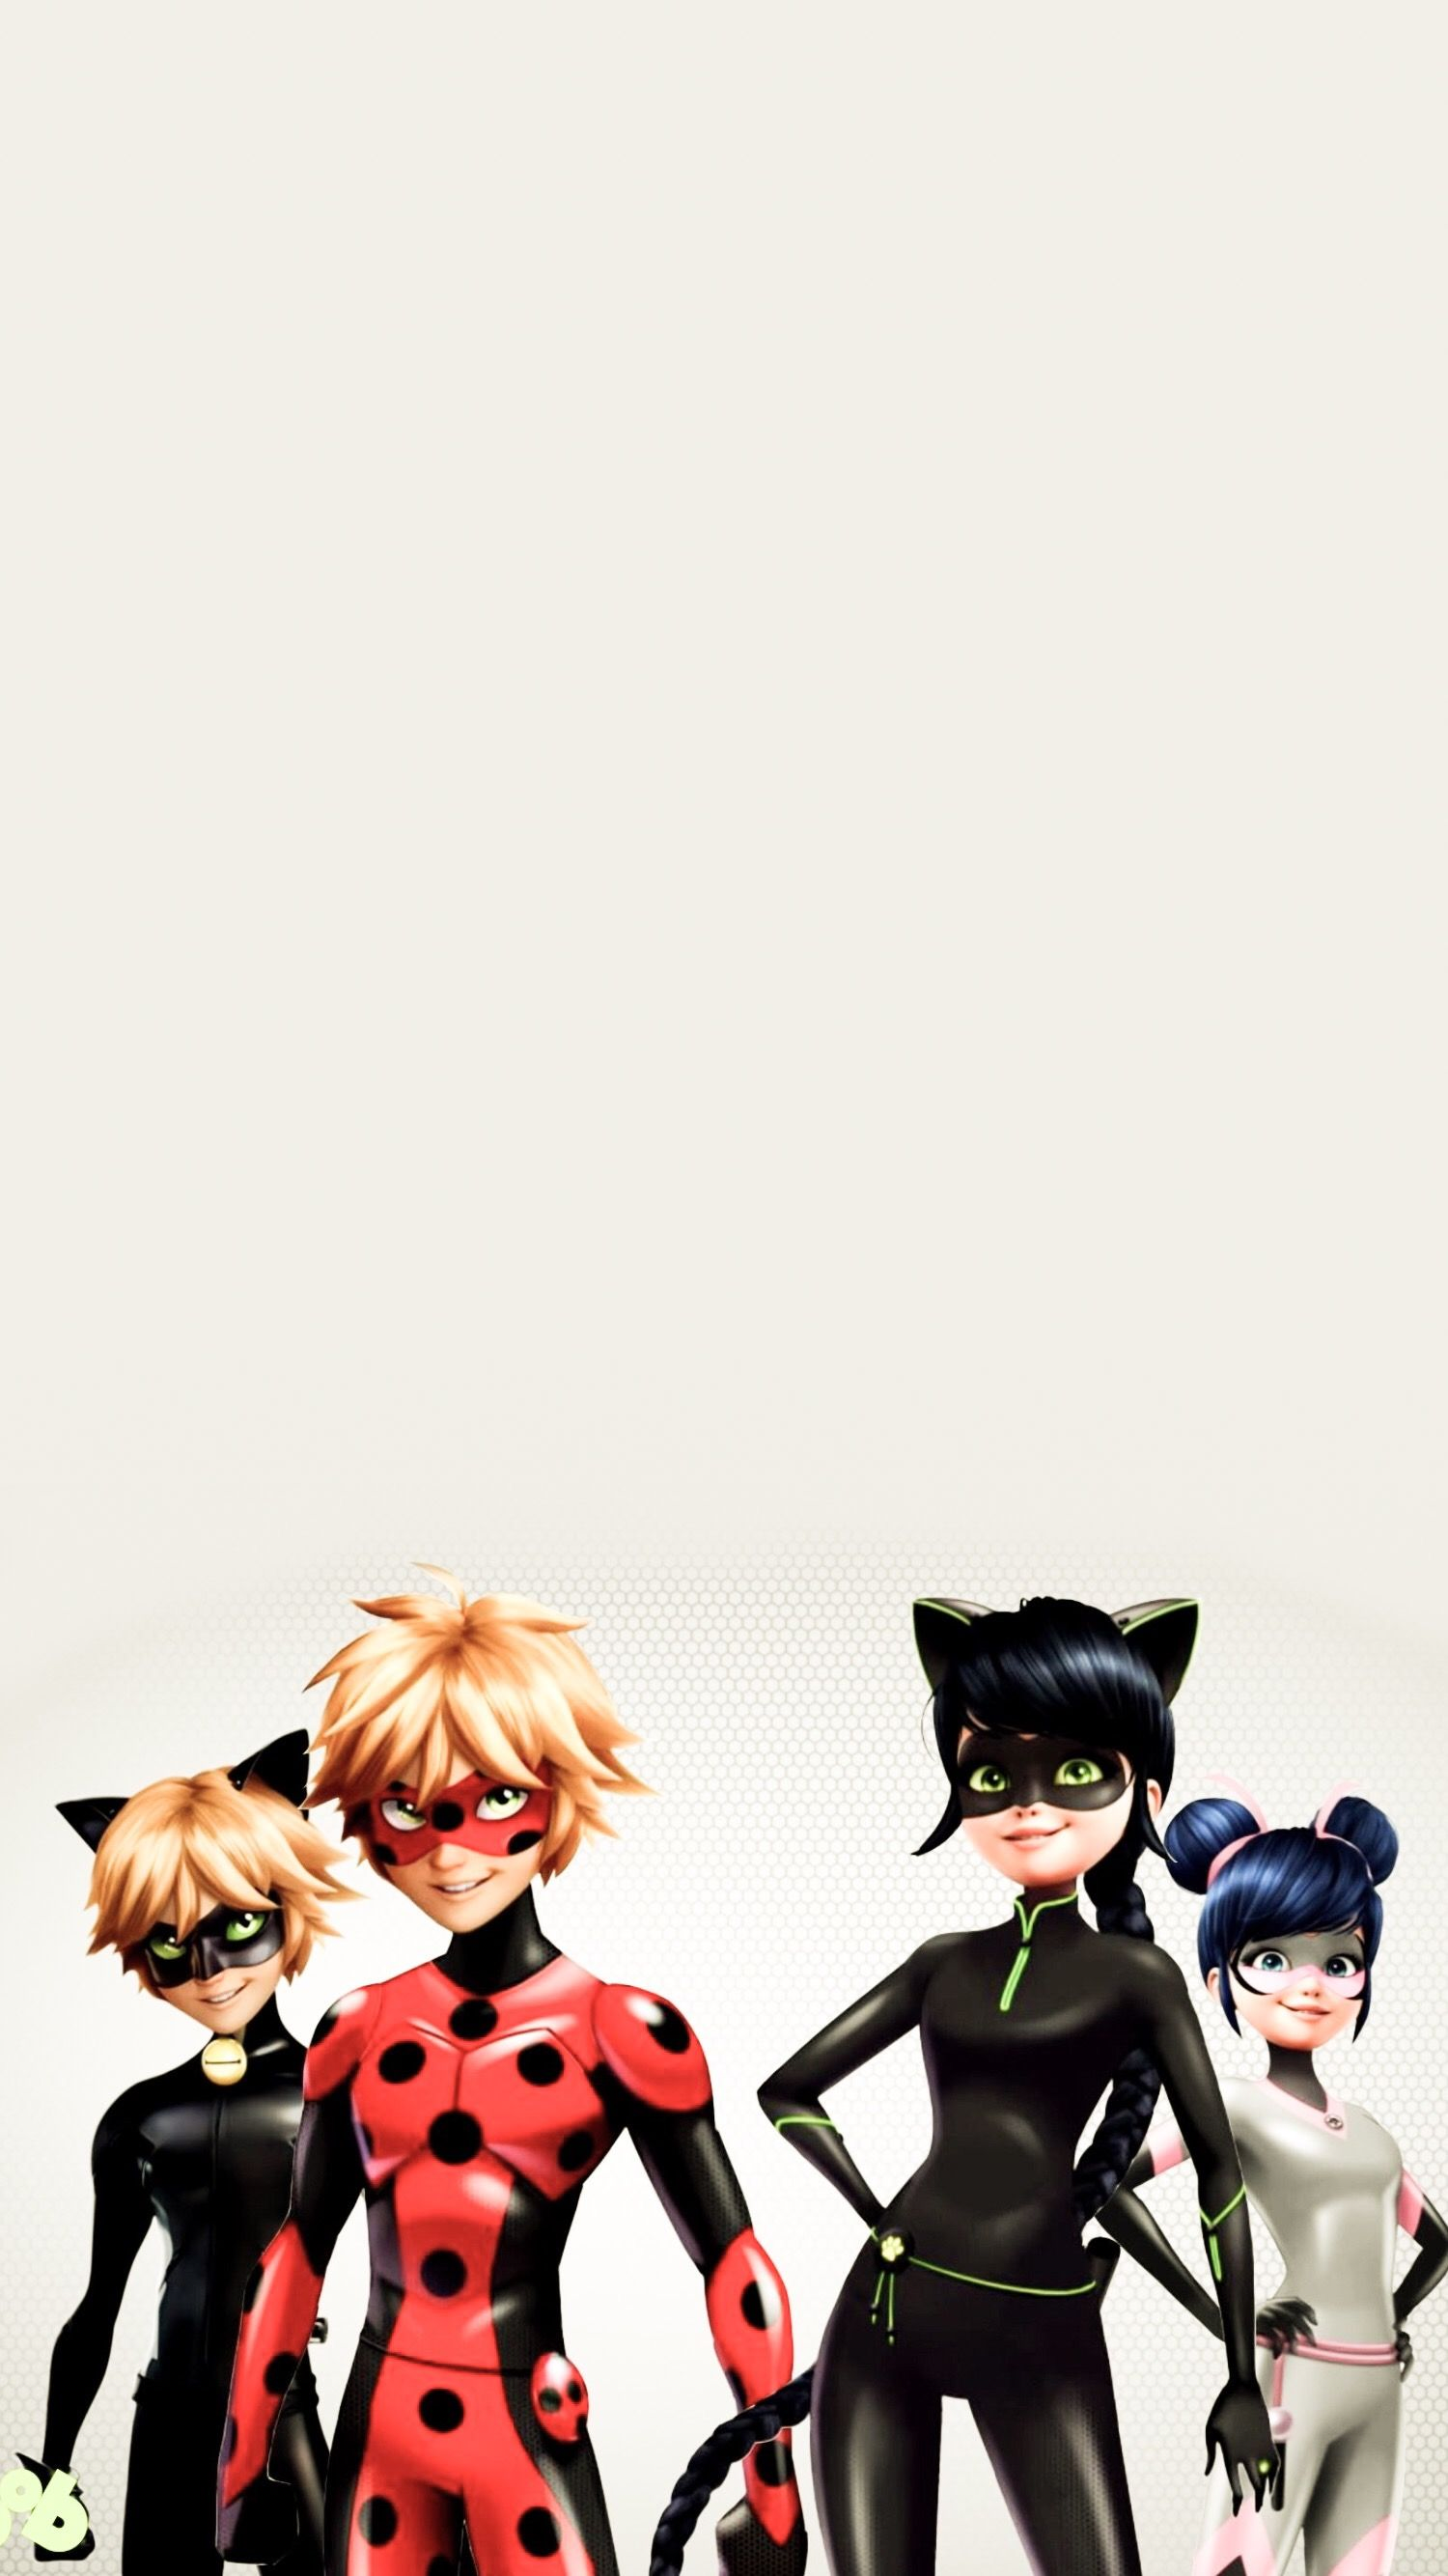 Miraculous Simply The Best Miraculous Wallpaper Miraculous Ladybug Comic Miraculous Ladybug Anime